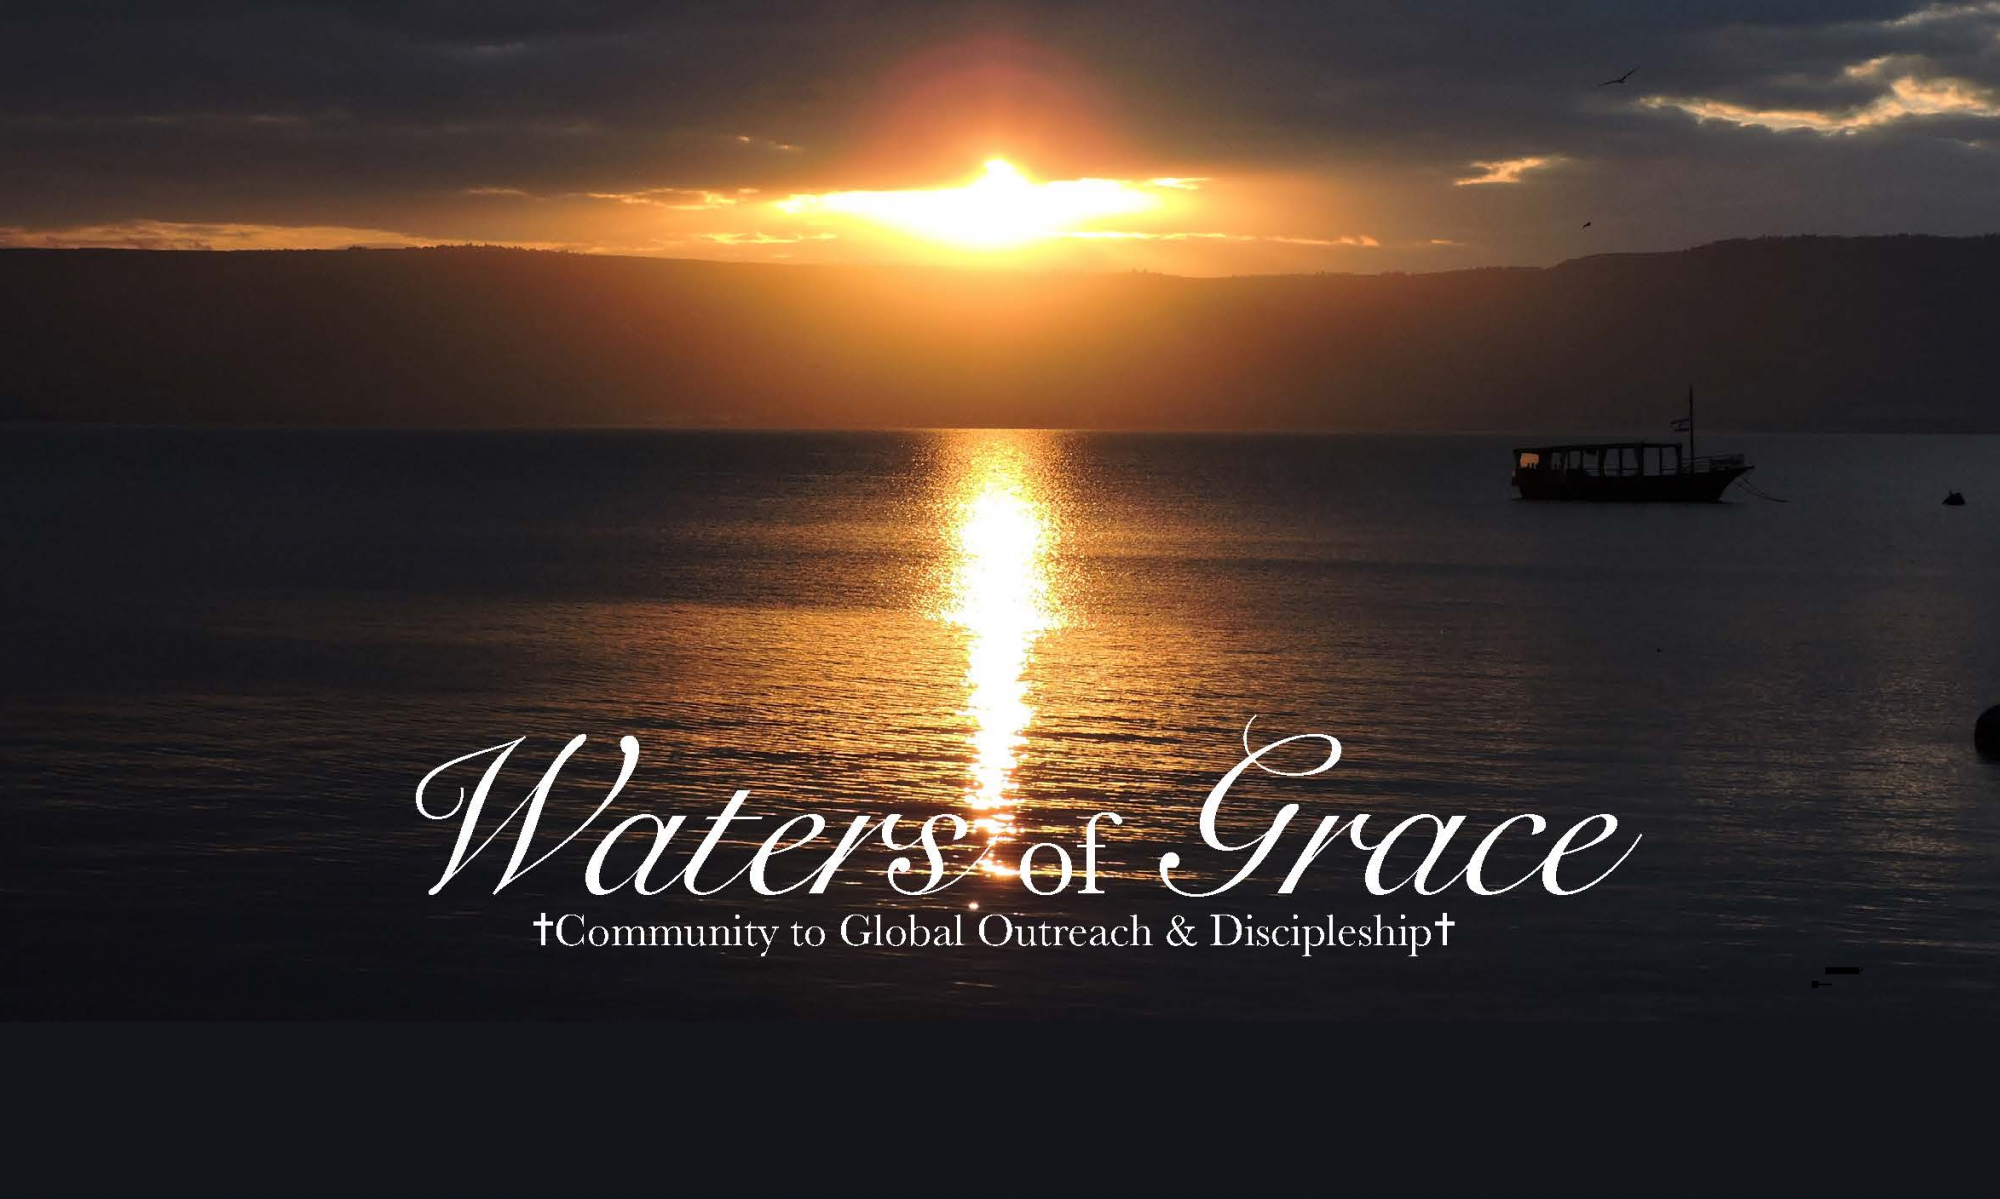 Waters of Grace